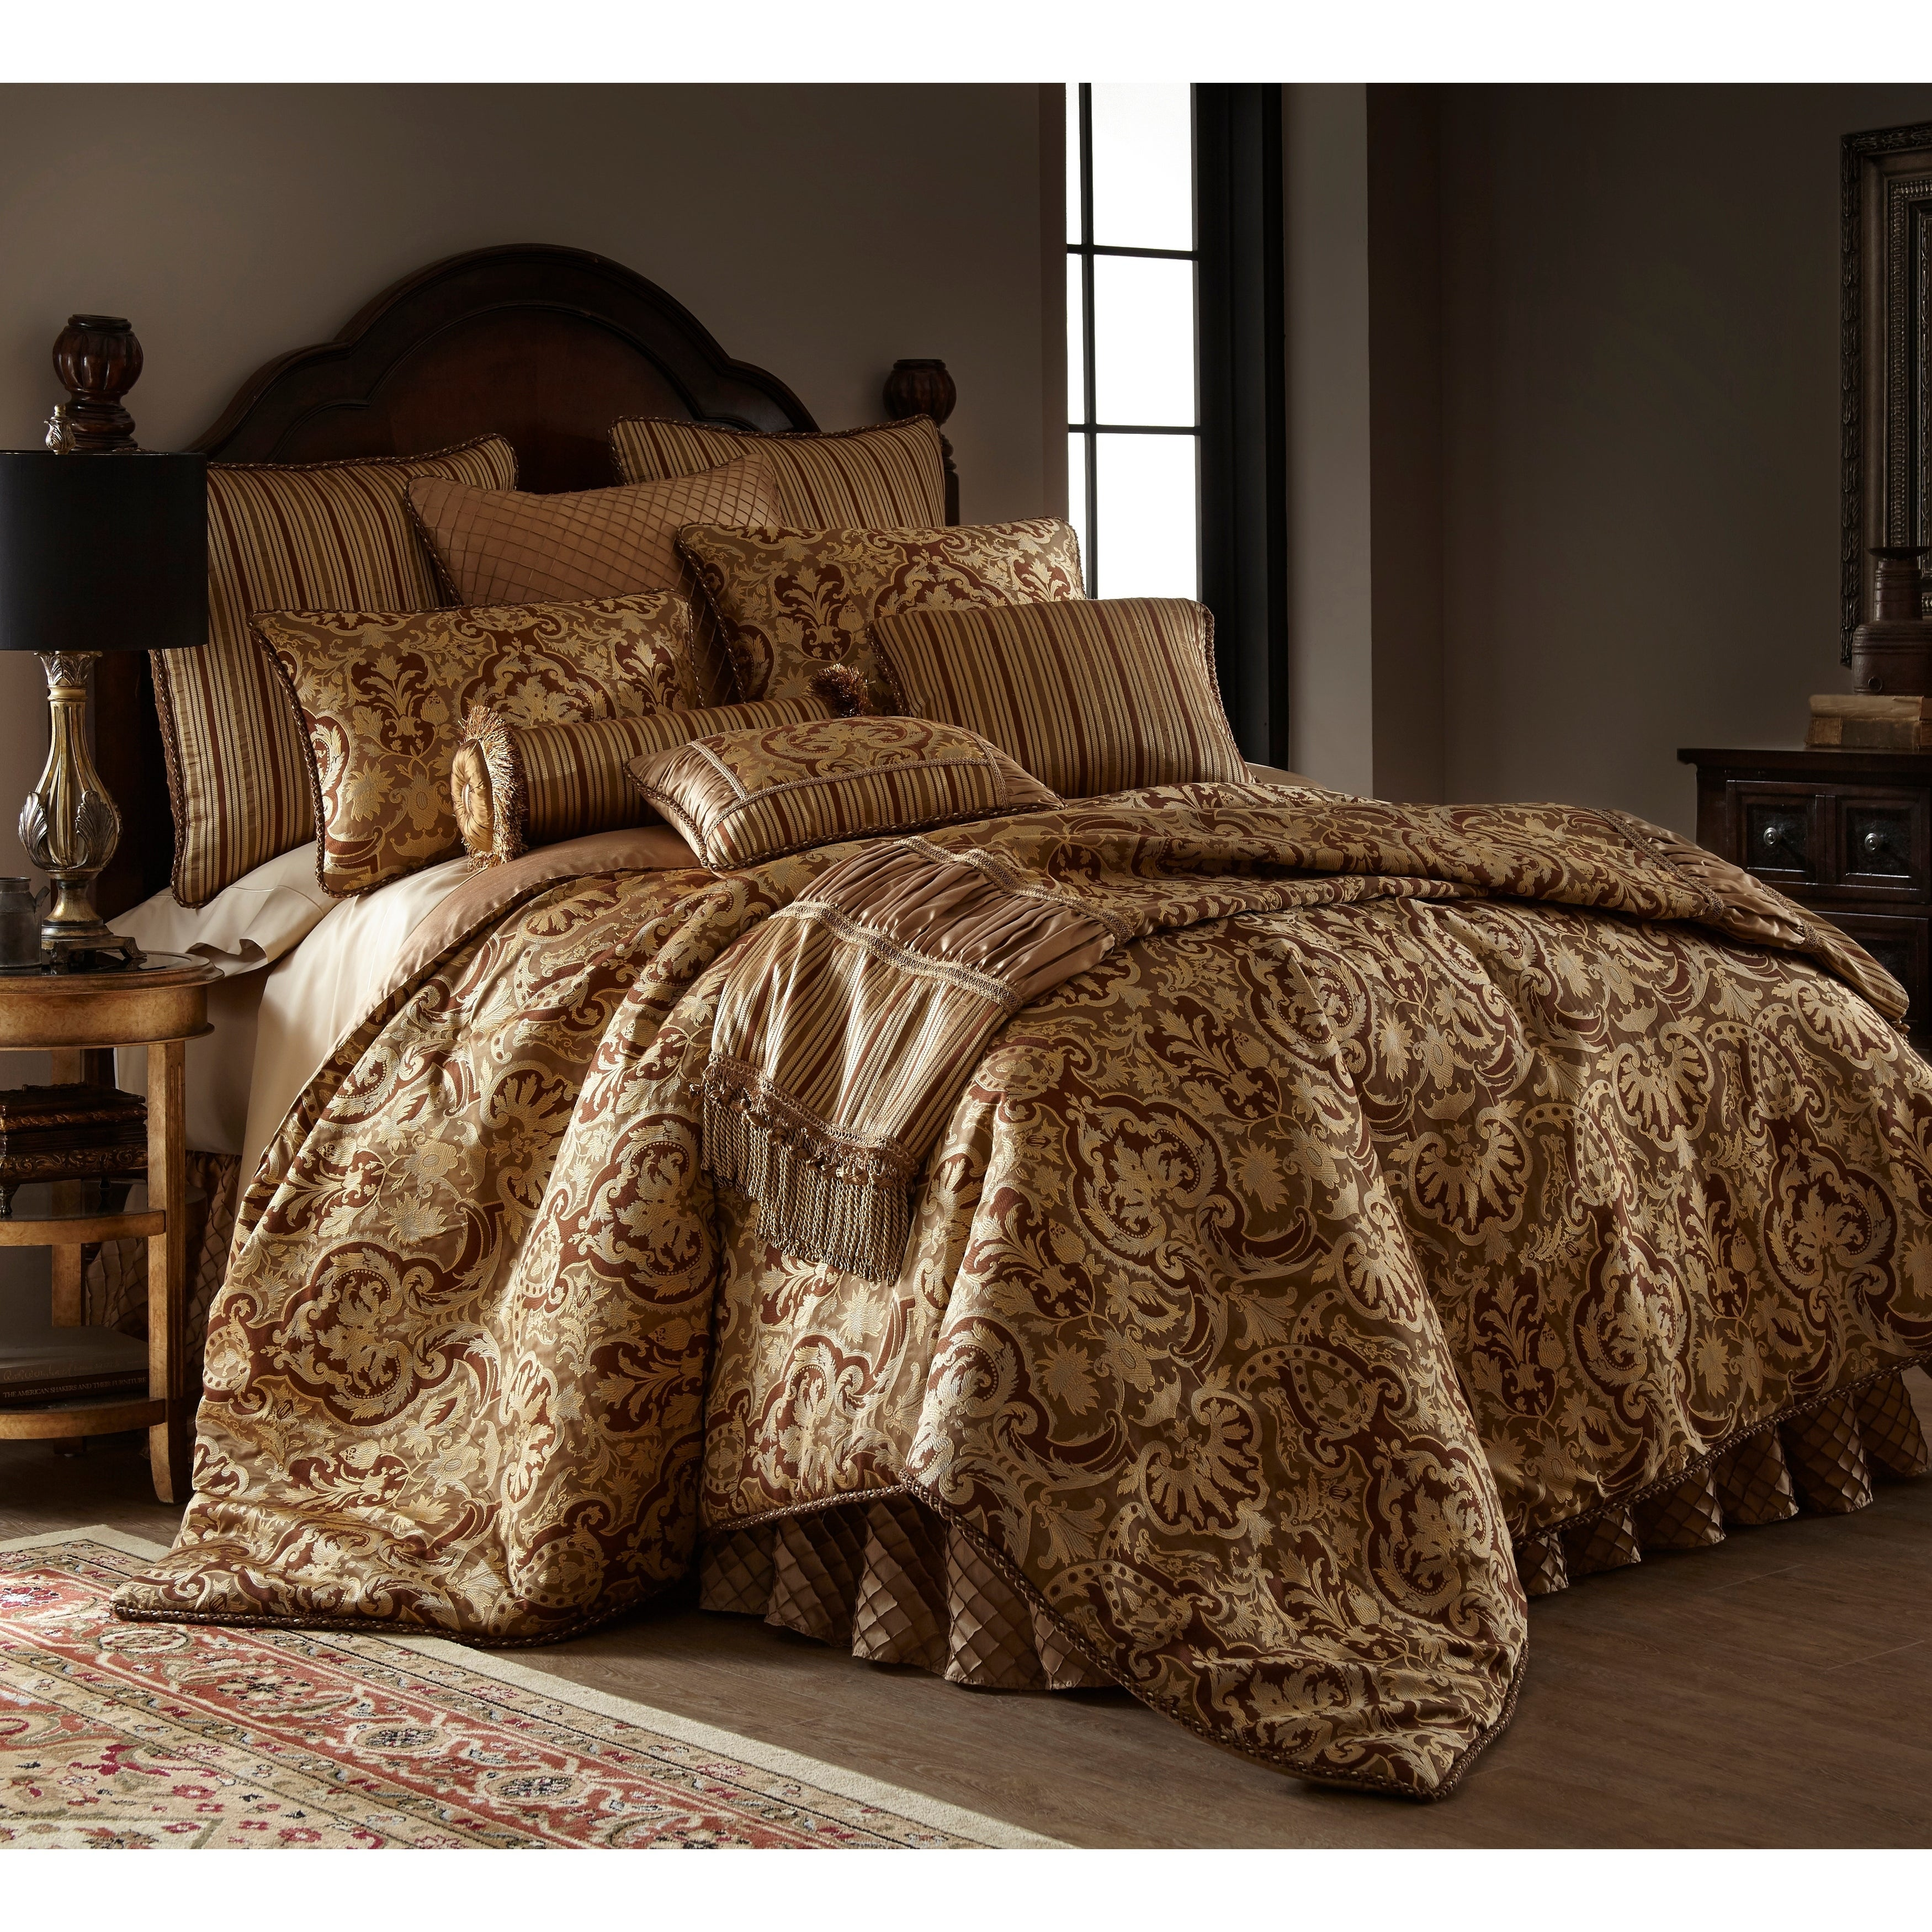 New Luxury 3 Piece Heavy Jacquard Quilted Bedspread Comforter Bed Set